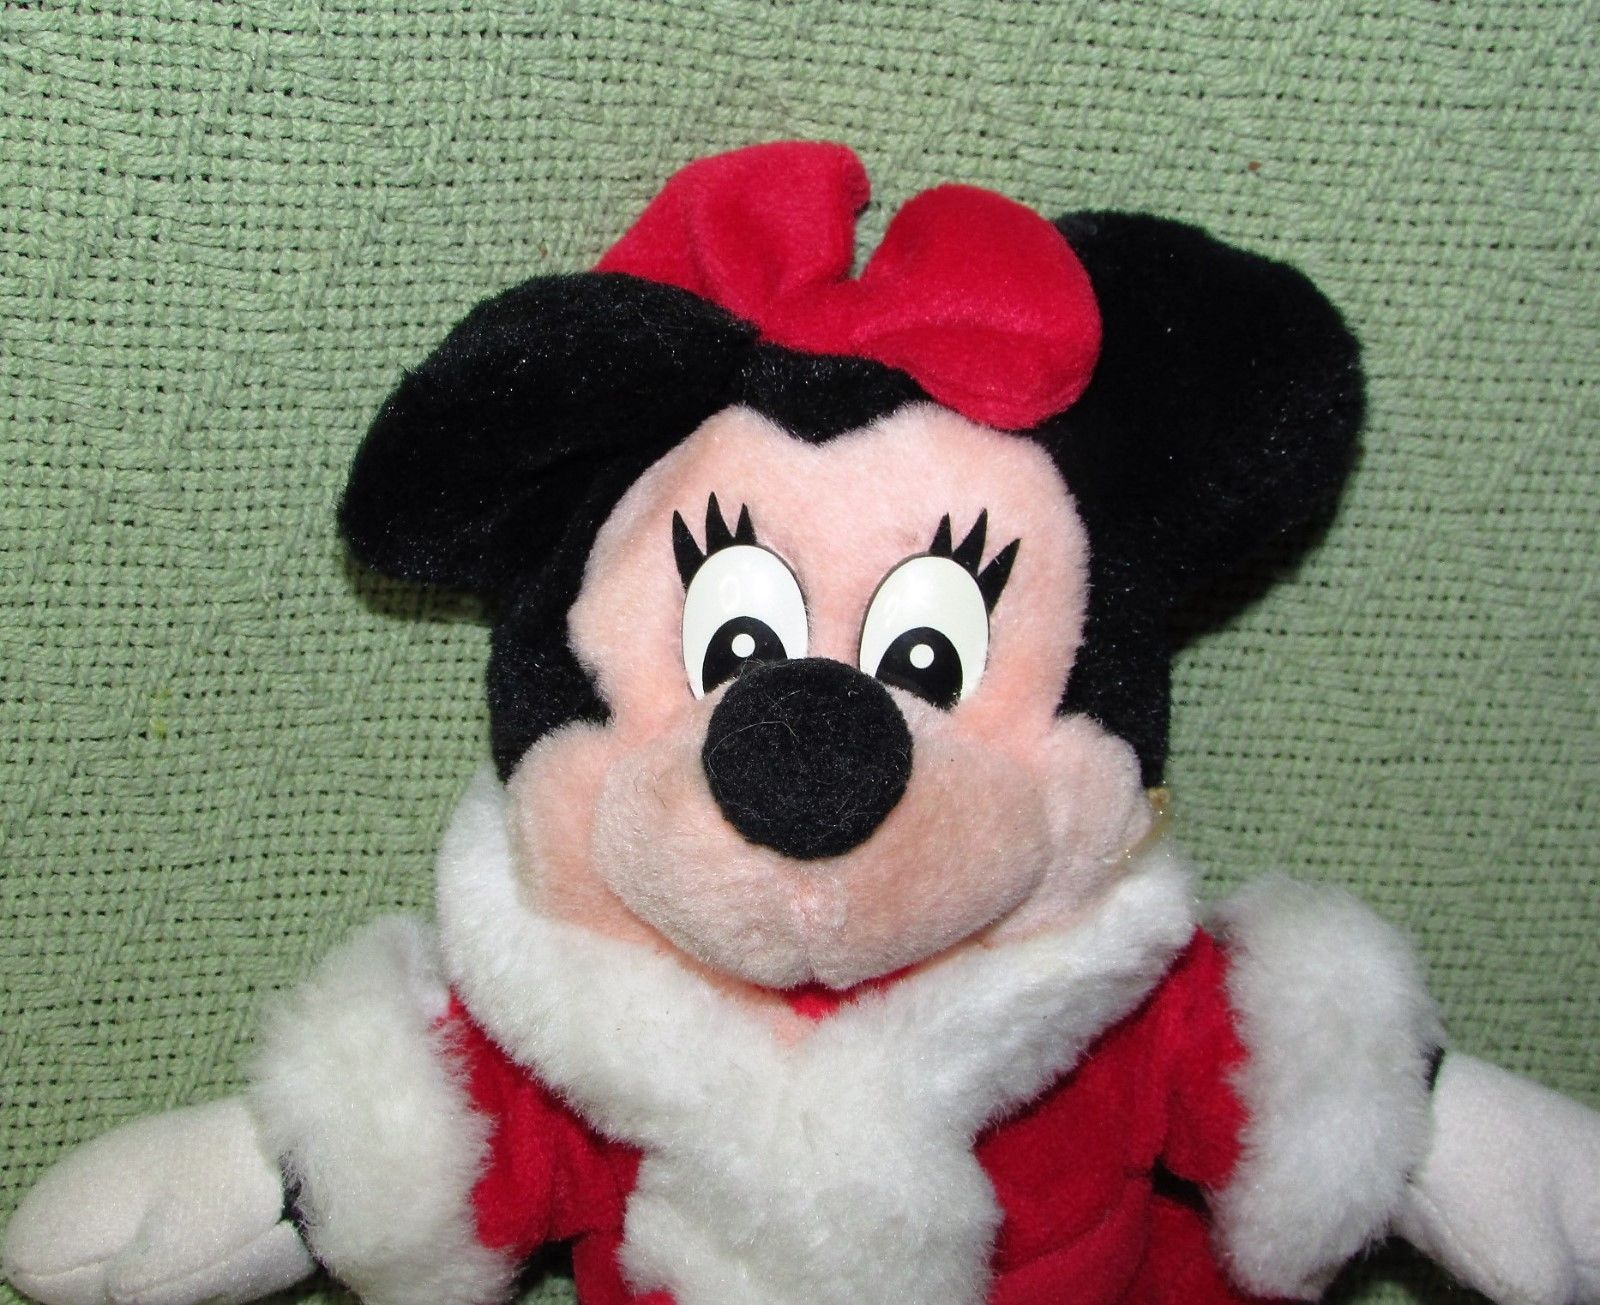 DISNEY STORE BABY Pink Easter Bunny & Mrs. Santa Claus Minnie Mouse Plush Dolls image 8